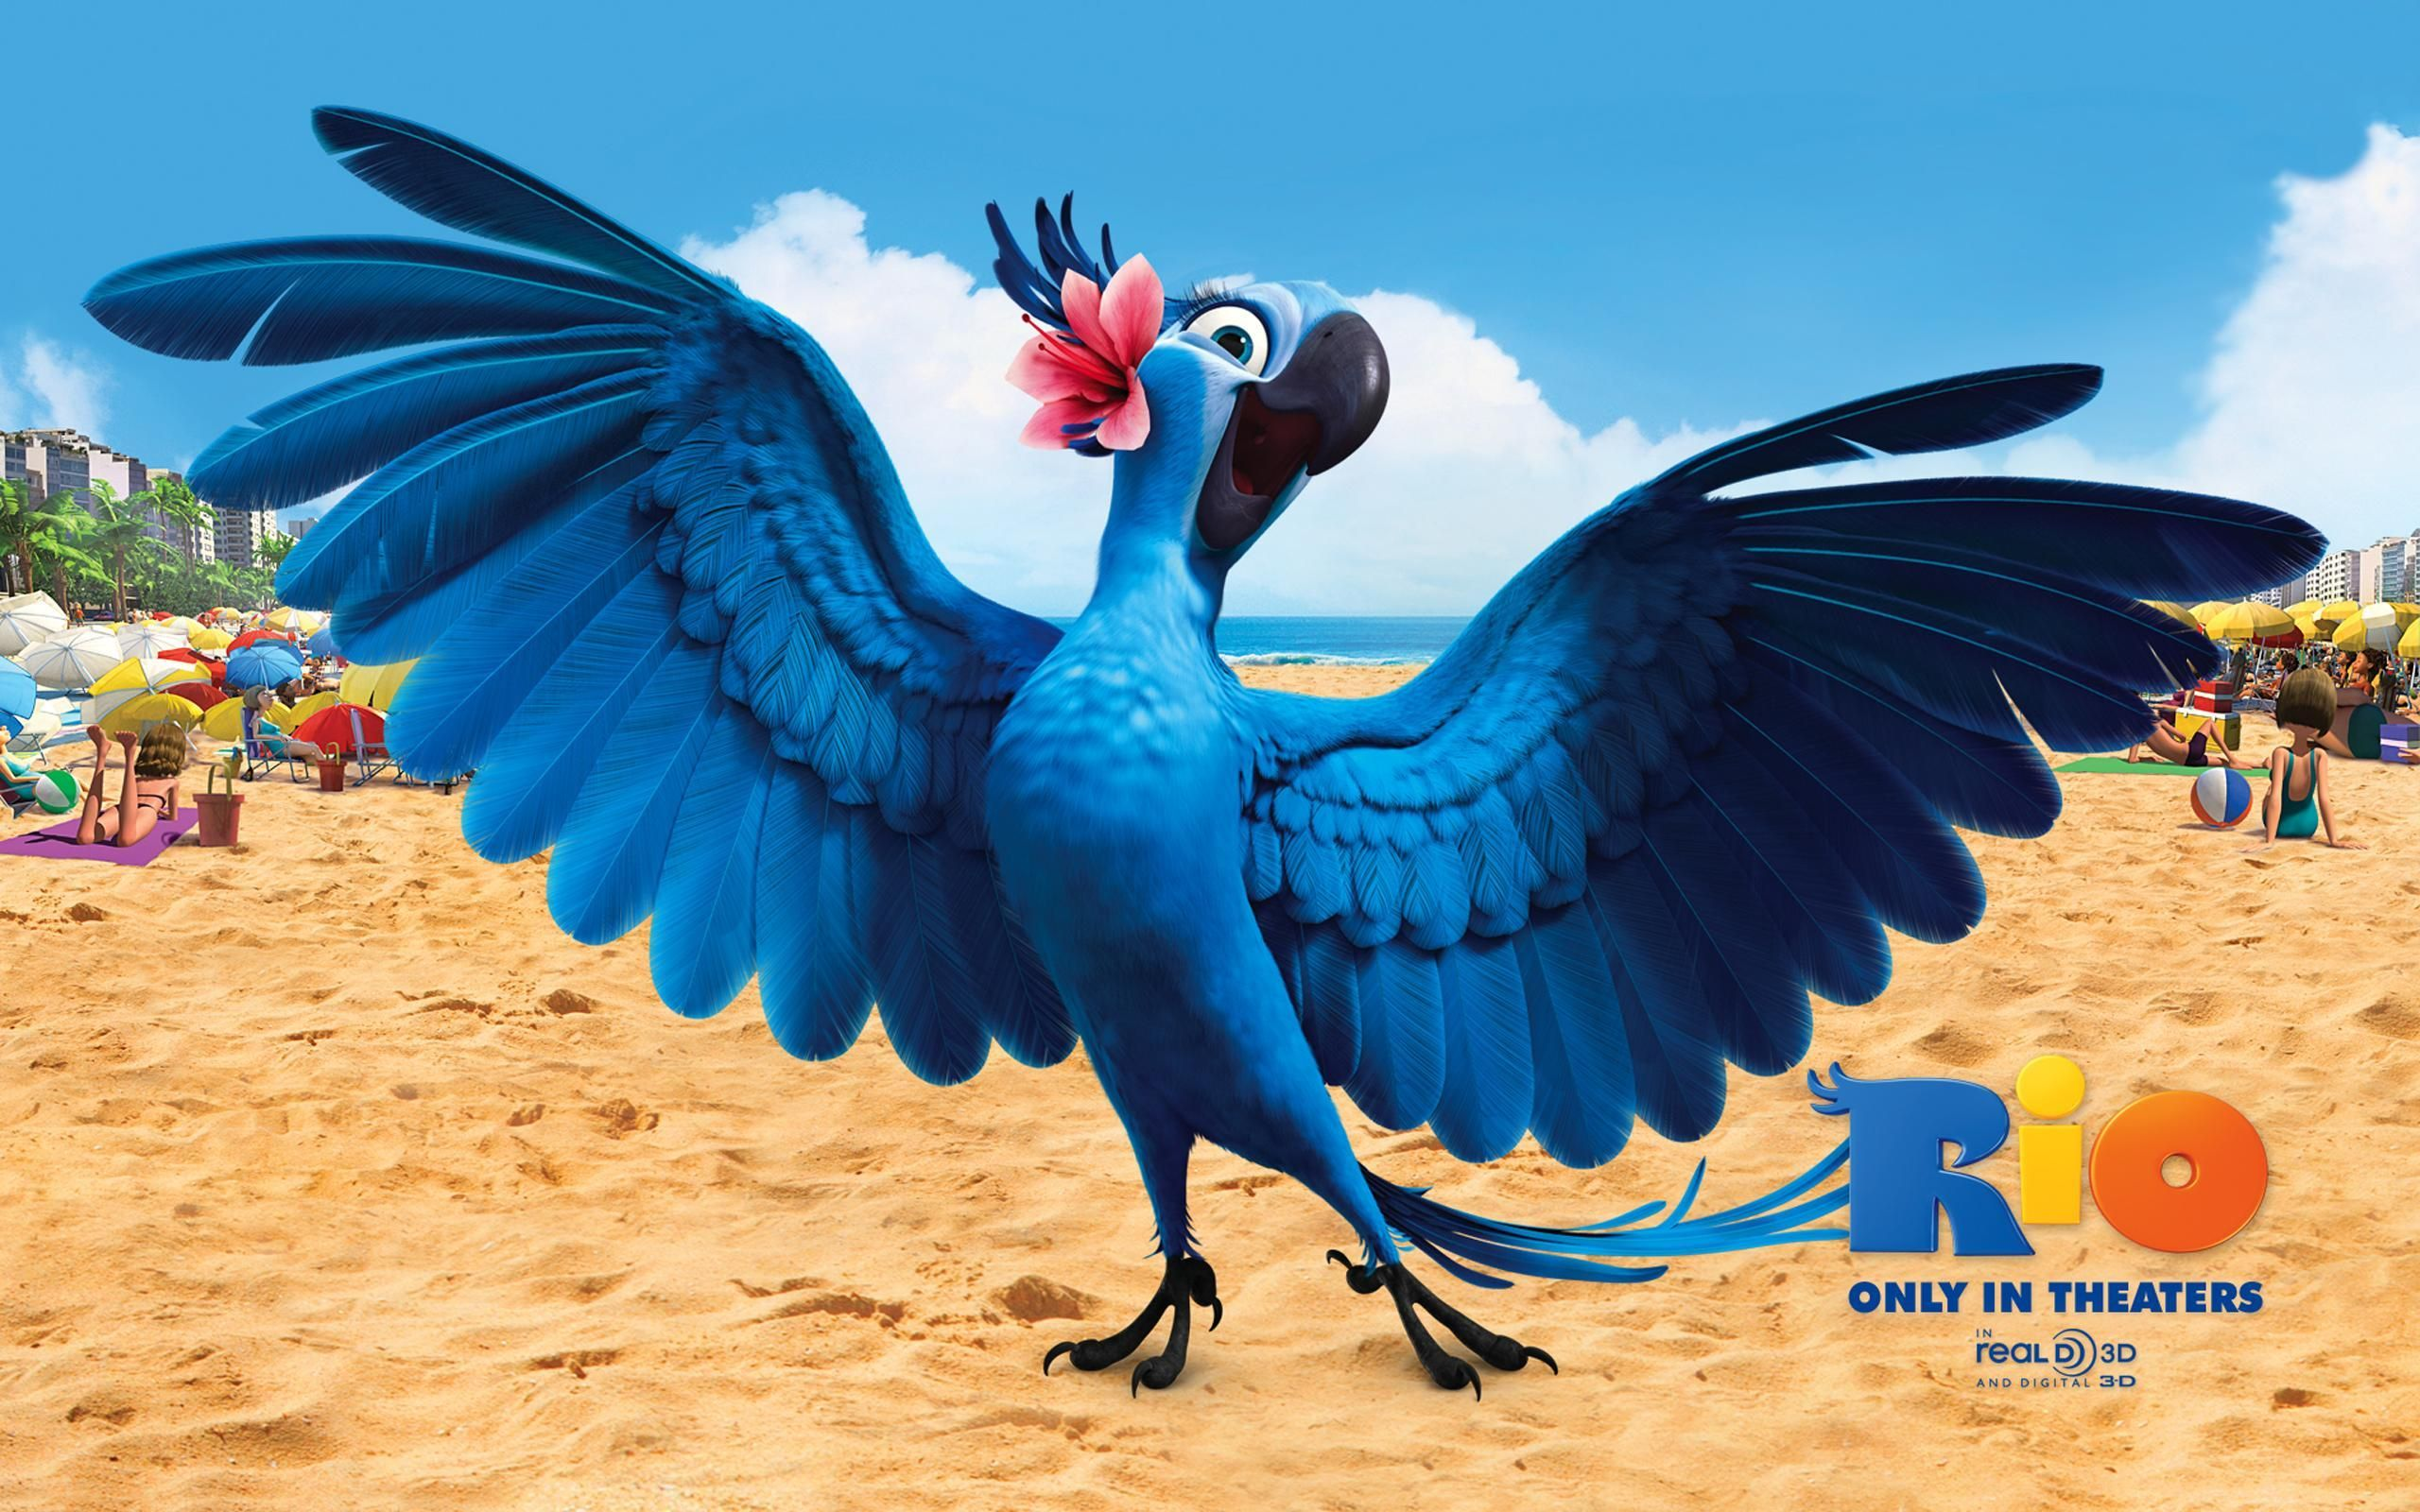 Jewel In Rio Hd Wallpaper Download Awesome Nice And High Quality Hd Wallpapers From Backgroundwallpapershd Fo Rio Movie Movie Art Print Angry Bird Pictures